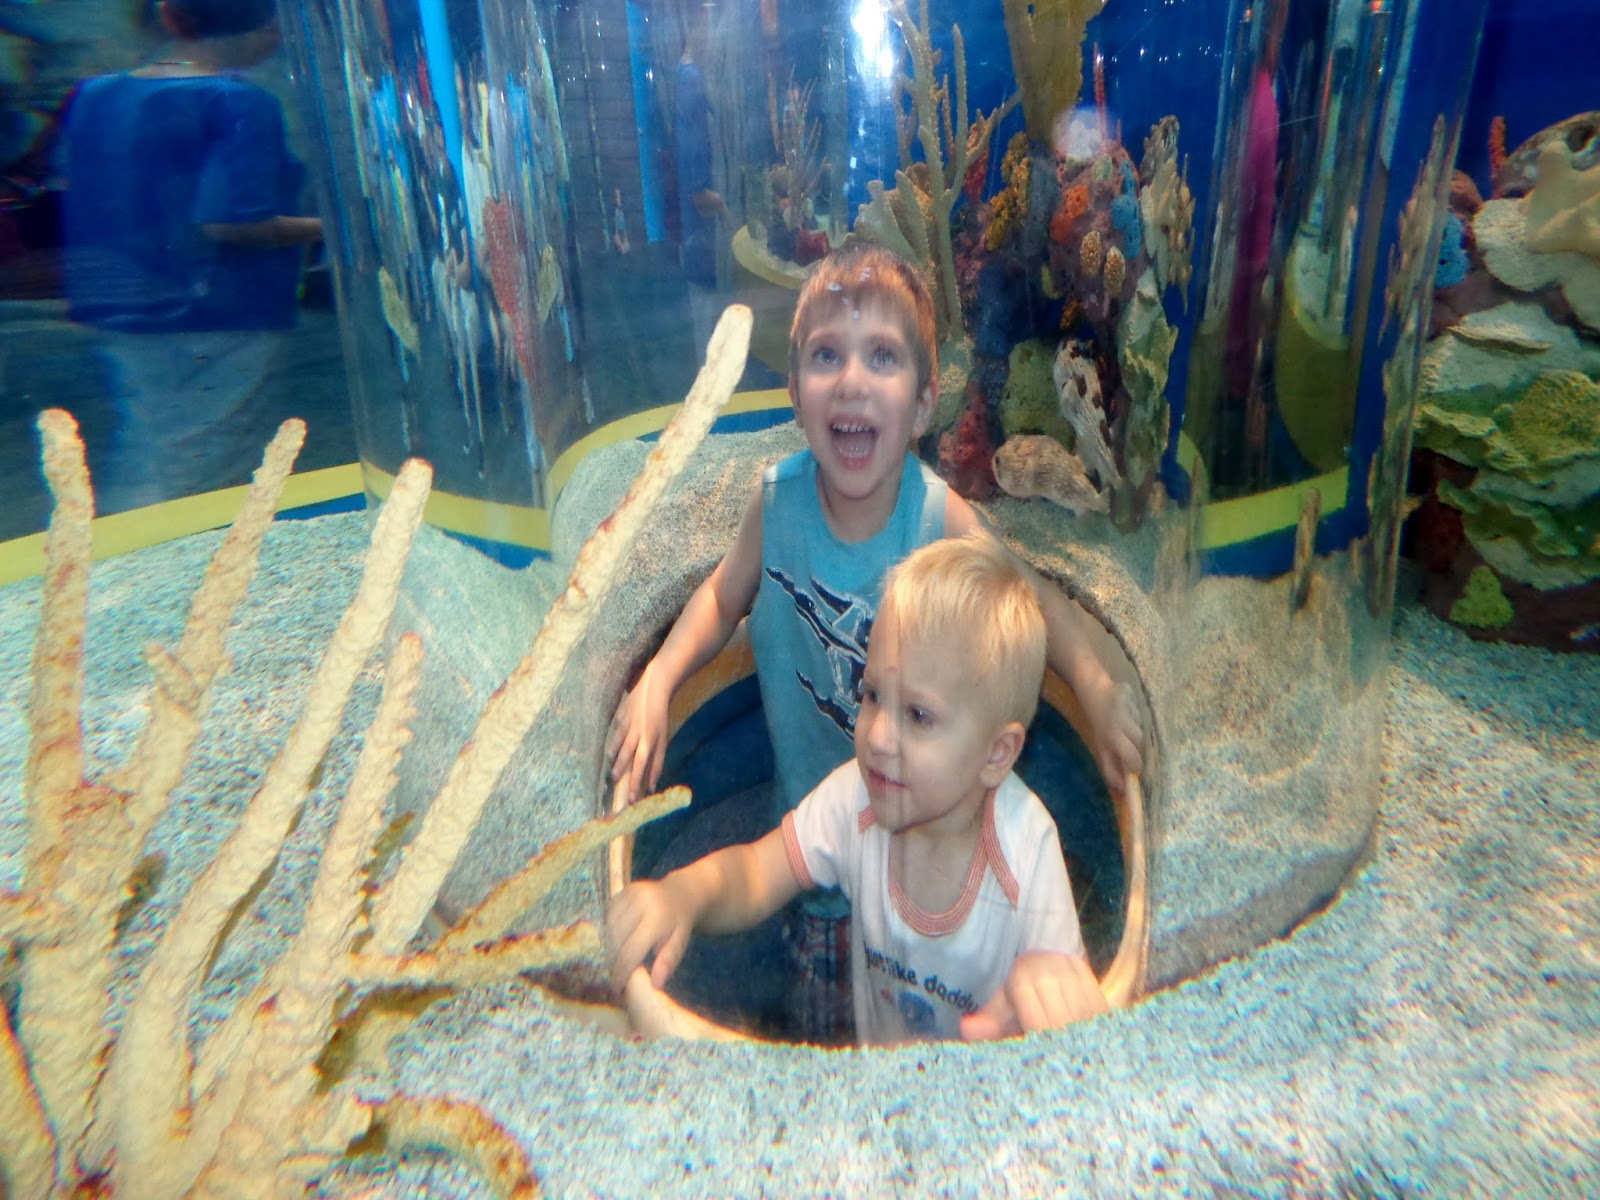 Fish aquarium in canada - Pop Up Perspective At Ripley S Aquarium